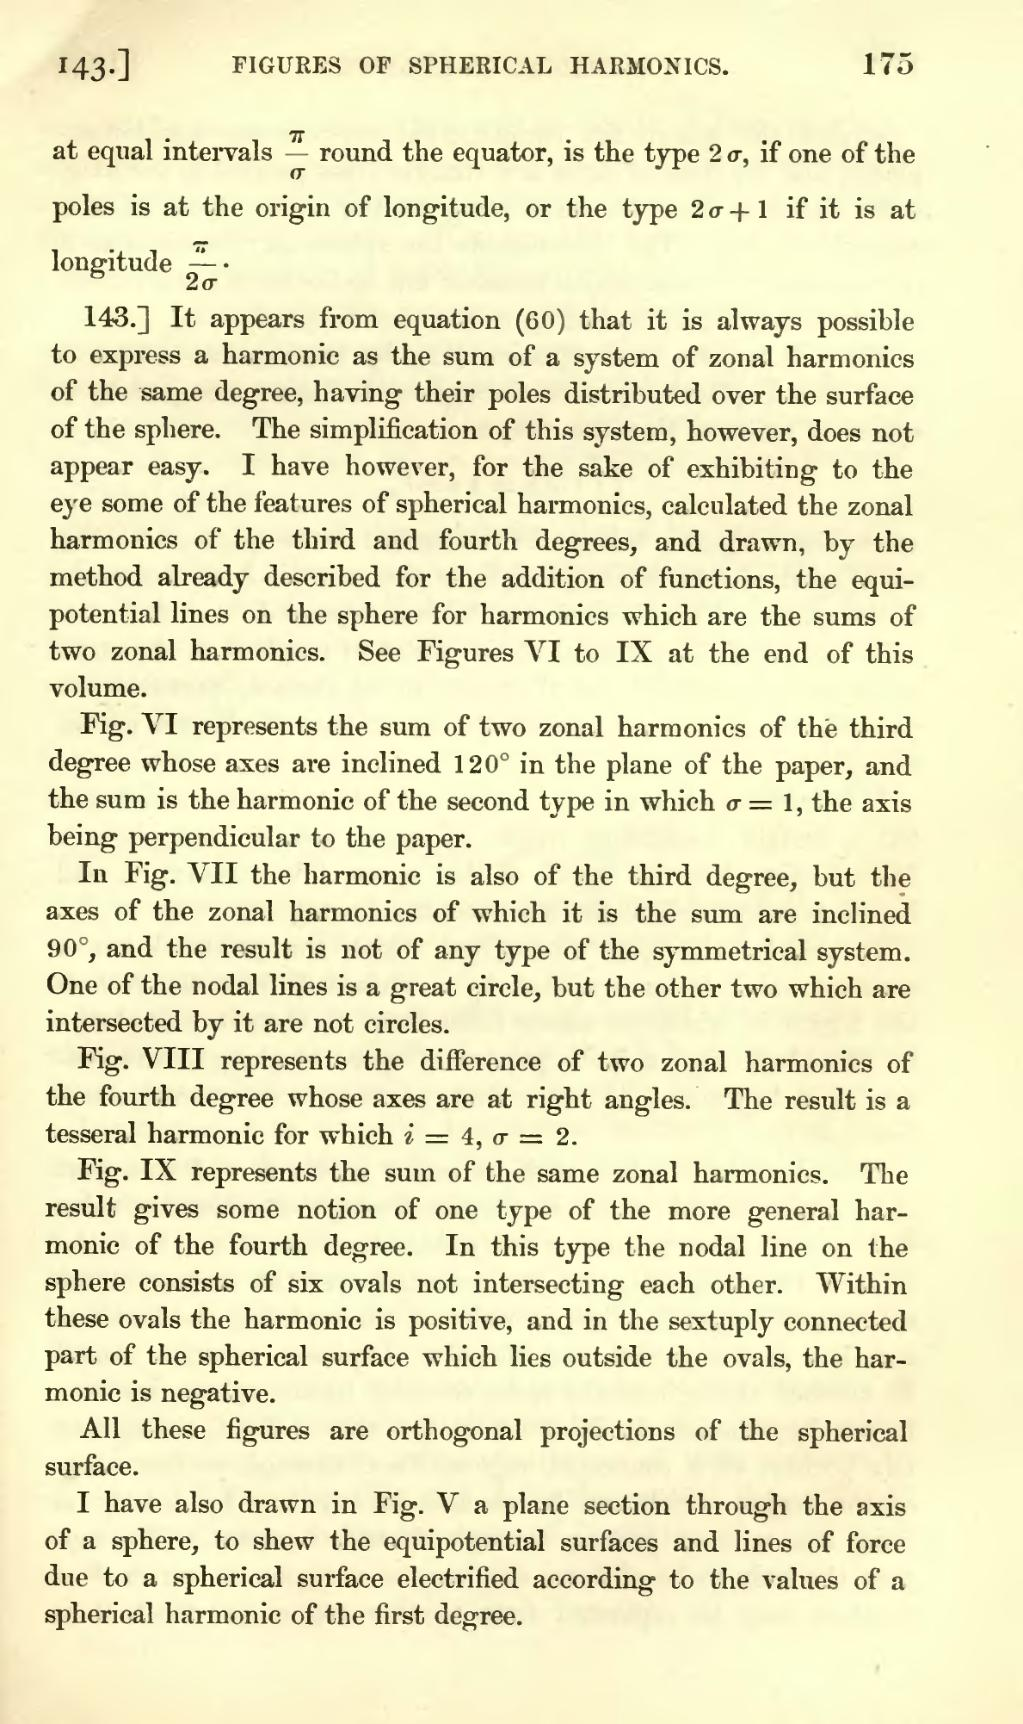 maxwell treatise on electricity and magnetism pdf